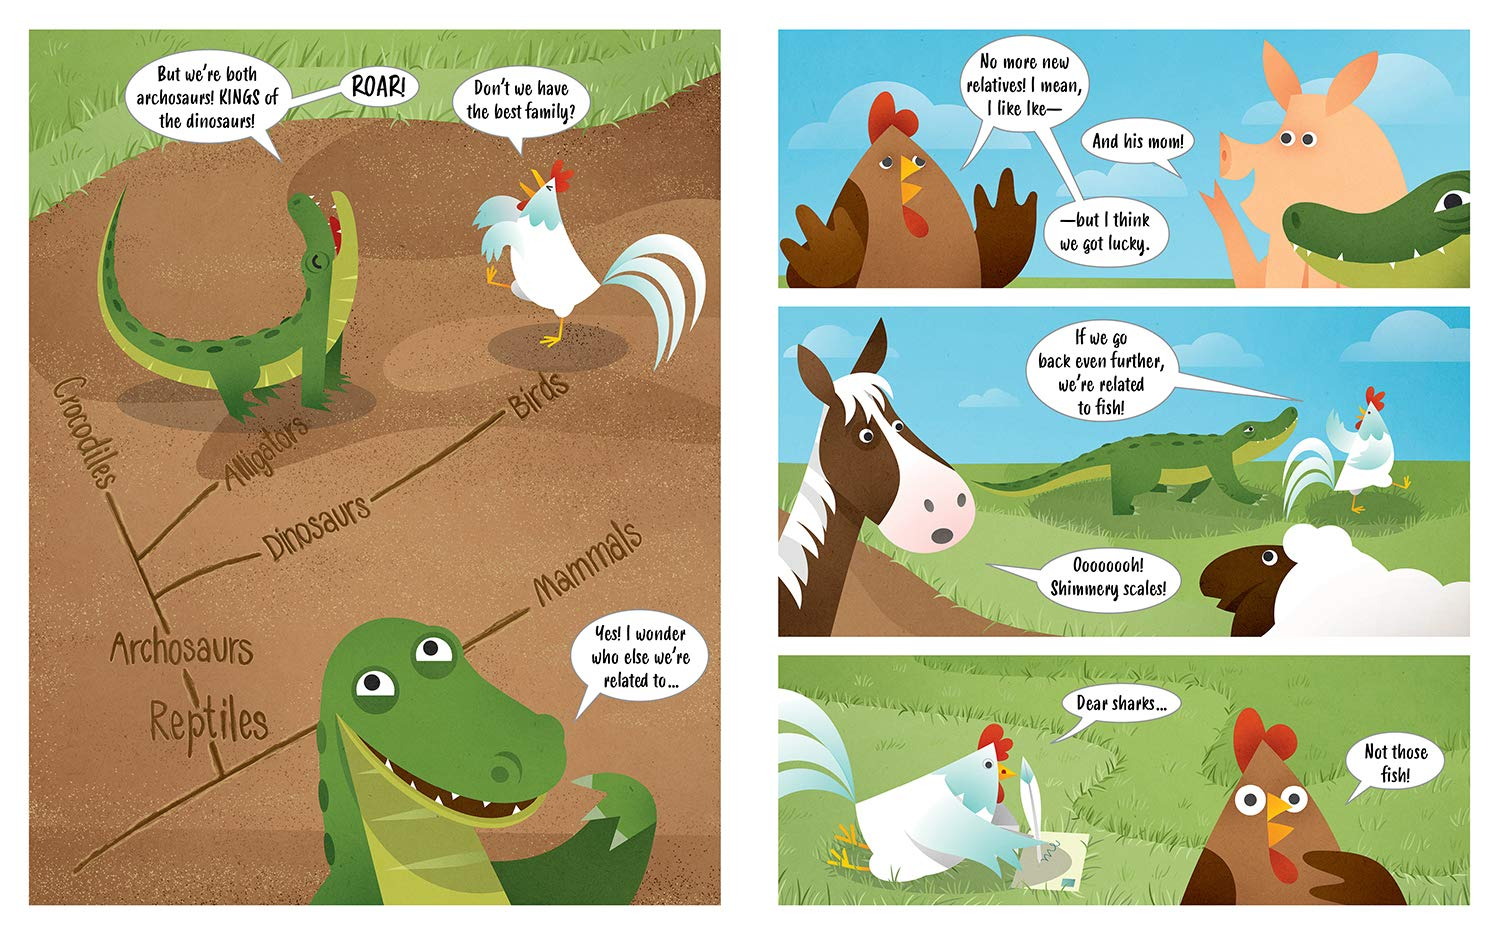 celebrate-picture-books-picture-book-review-chicken-frank-dinosaur-archosaurs